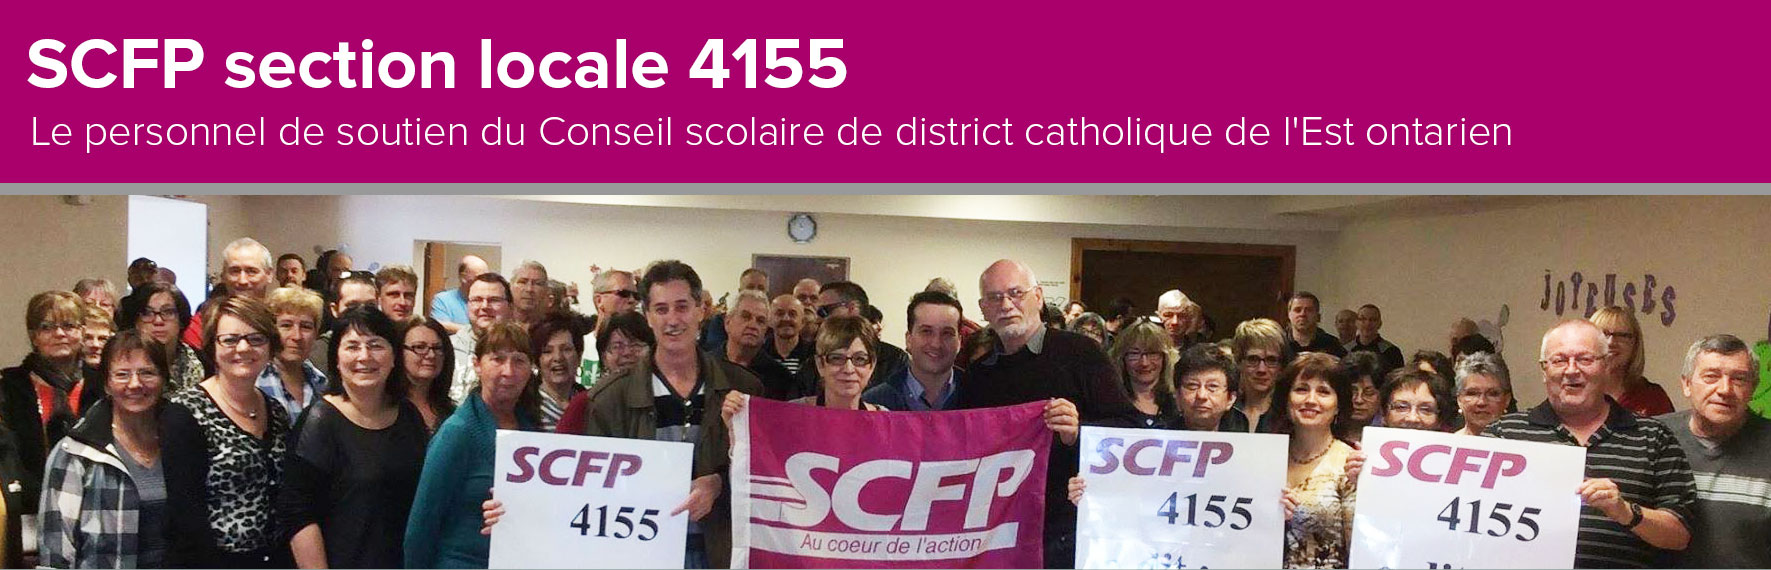 SCFP section locale 4155